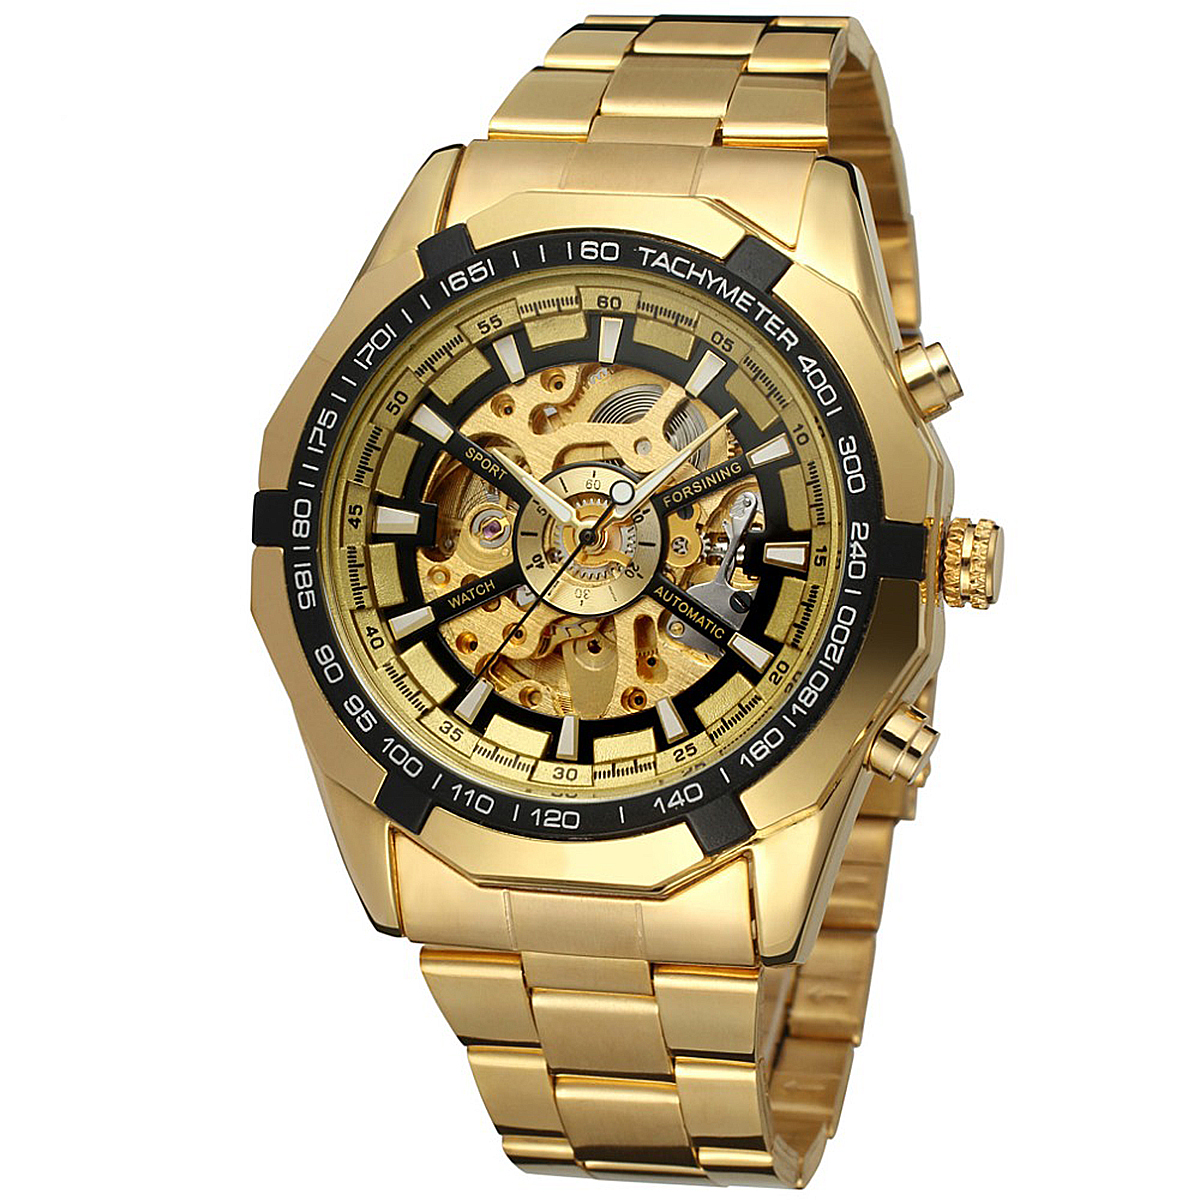 Shellhard Cool Men Winner Mechanical Watch 8 Colors Sports Stainless Steel Automatic Mechanical Analog Wrist Watches For Male цена и фото